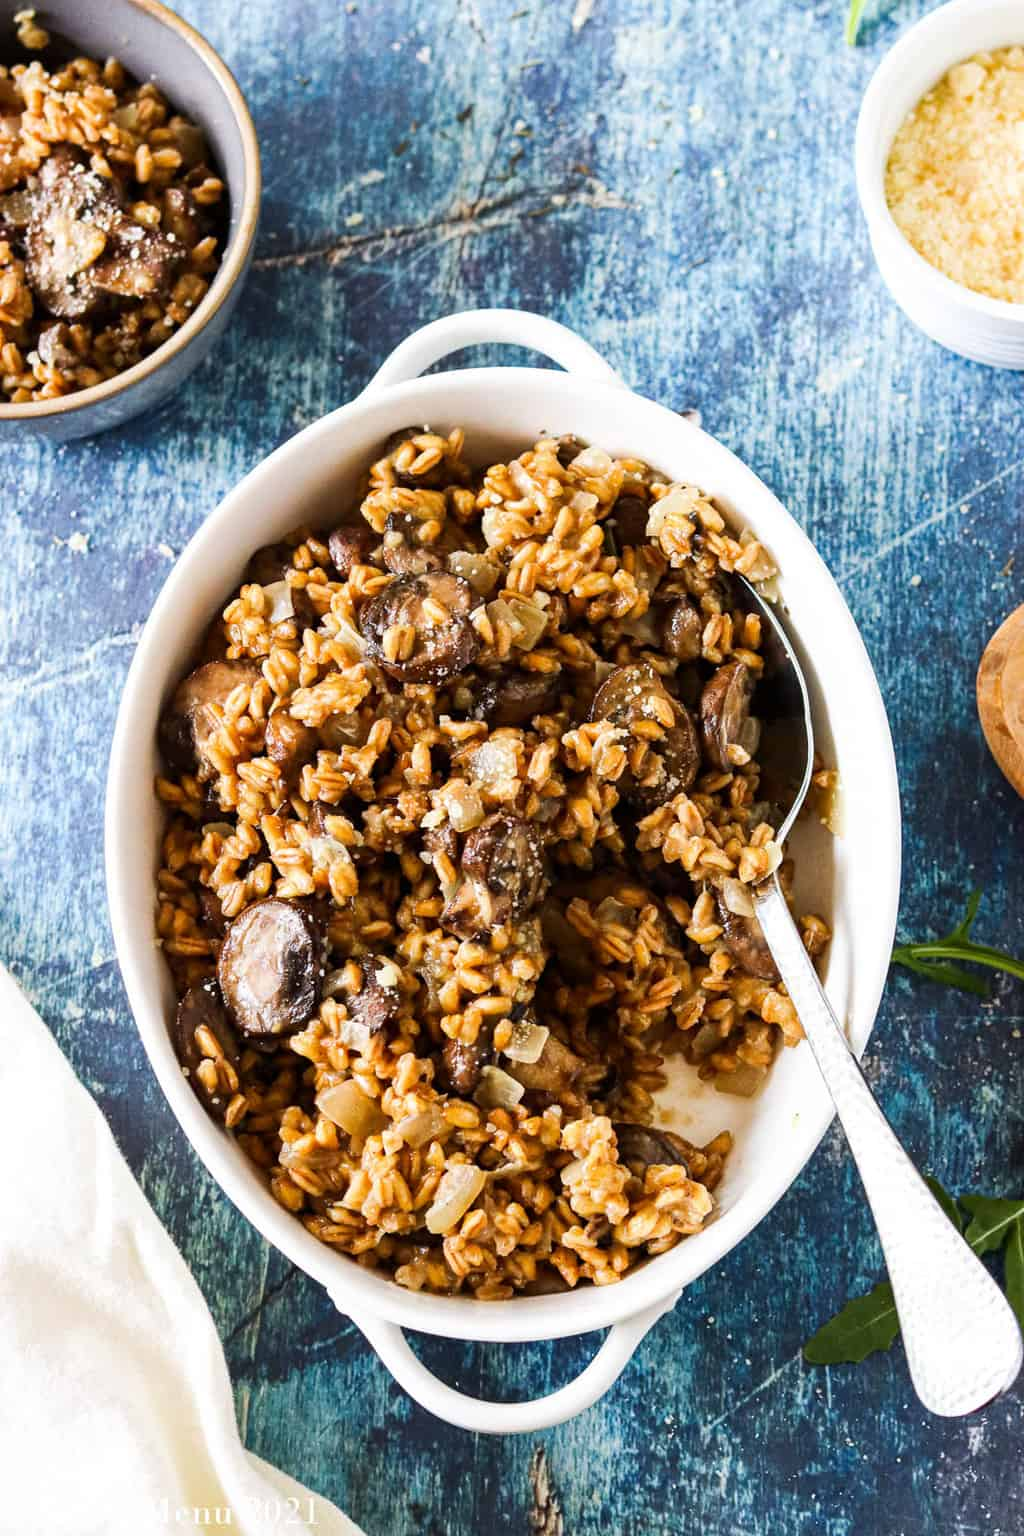 An overhead shot of a bowl of mushroom farro risotto with a spoon in it. The bowl is surrounded by a cup of cheese and a small dish of risotto